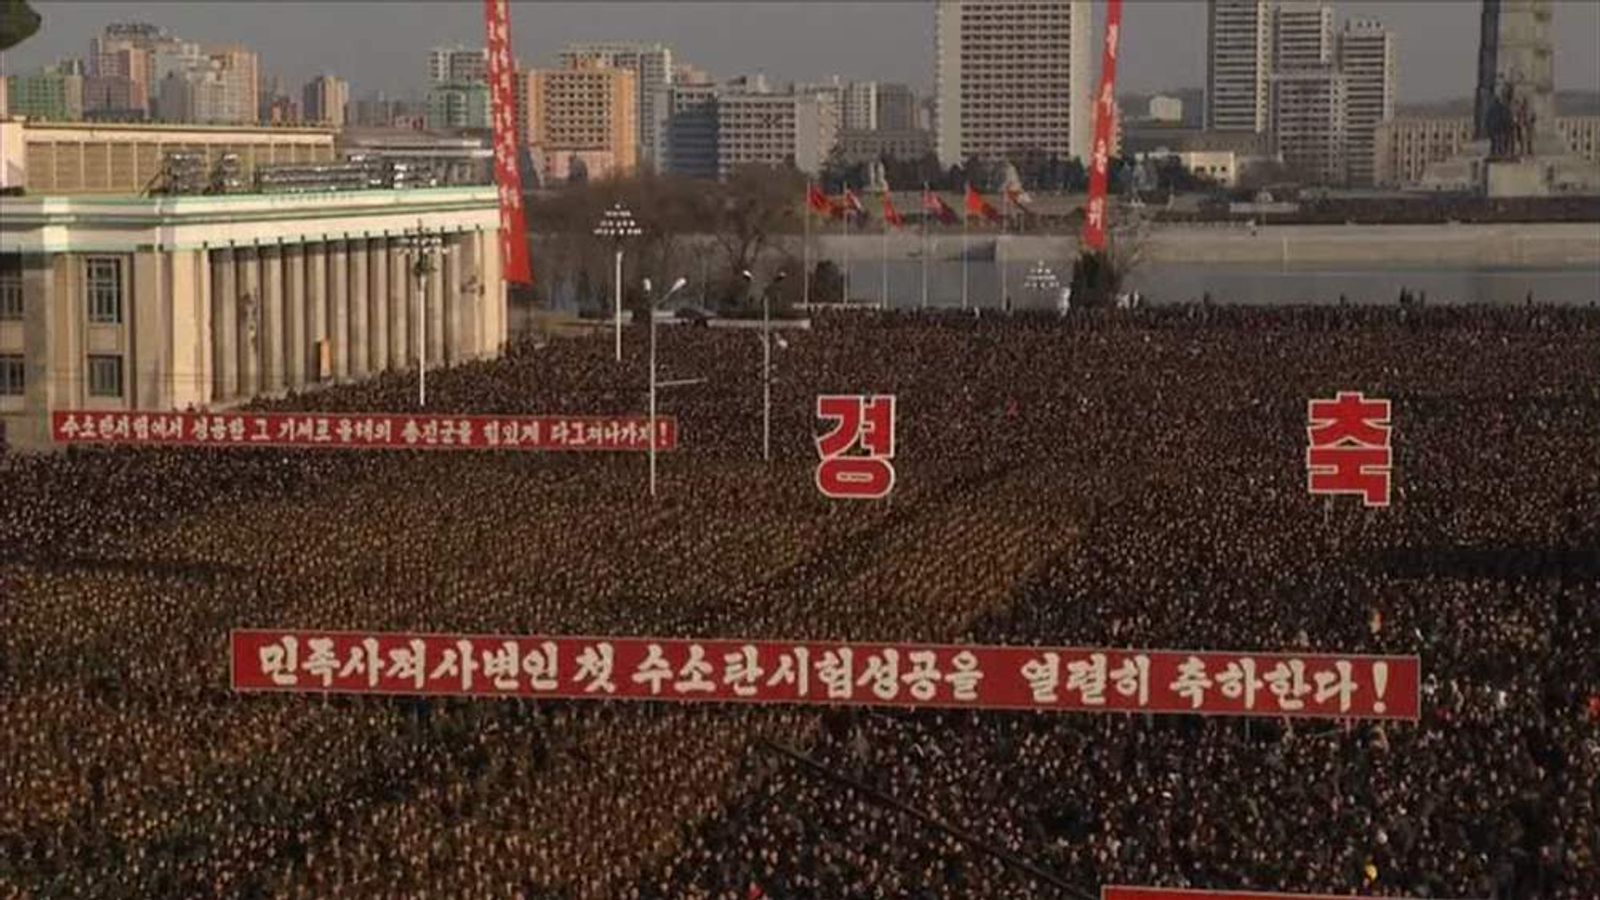 Authorities say up to 100,000 attended